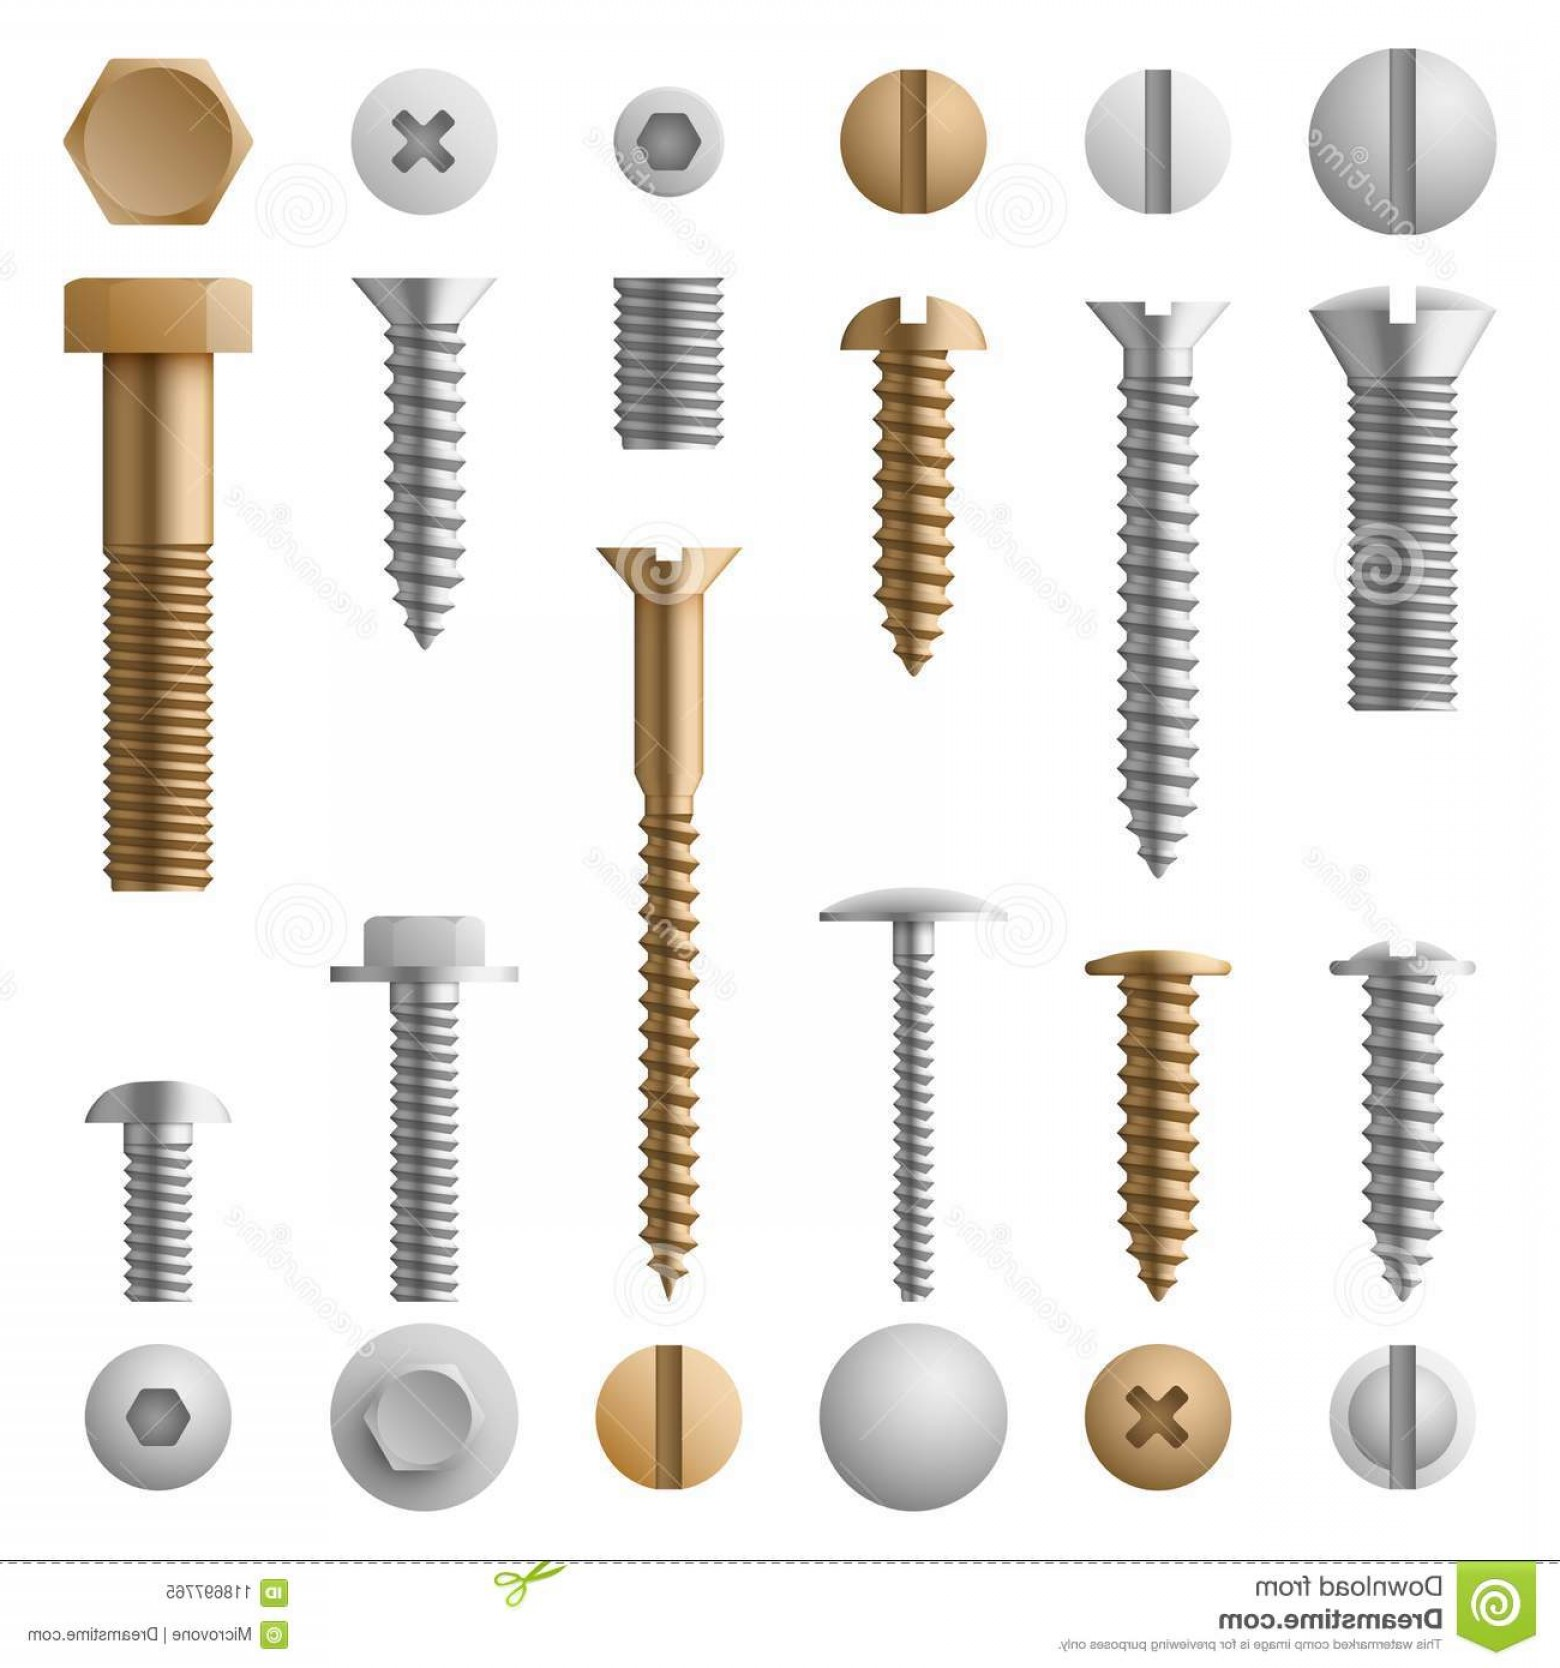 Screw Vector: Stainless Bolts Screws Nuts Fasteners Rivets Vector Illustration Isolated White Background Rivet Screw Bolt Steel Element Image